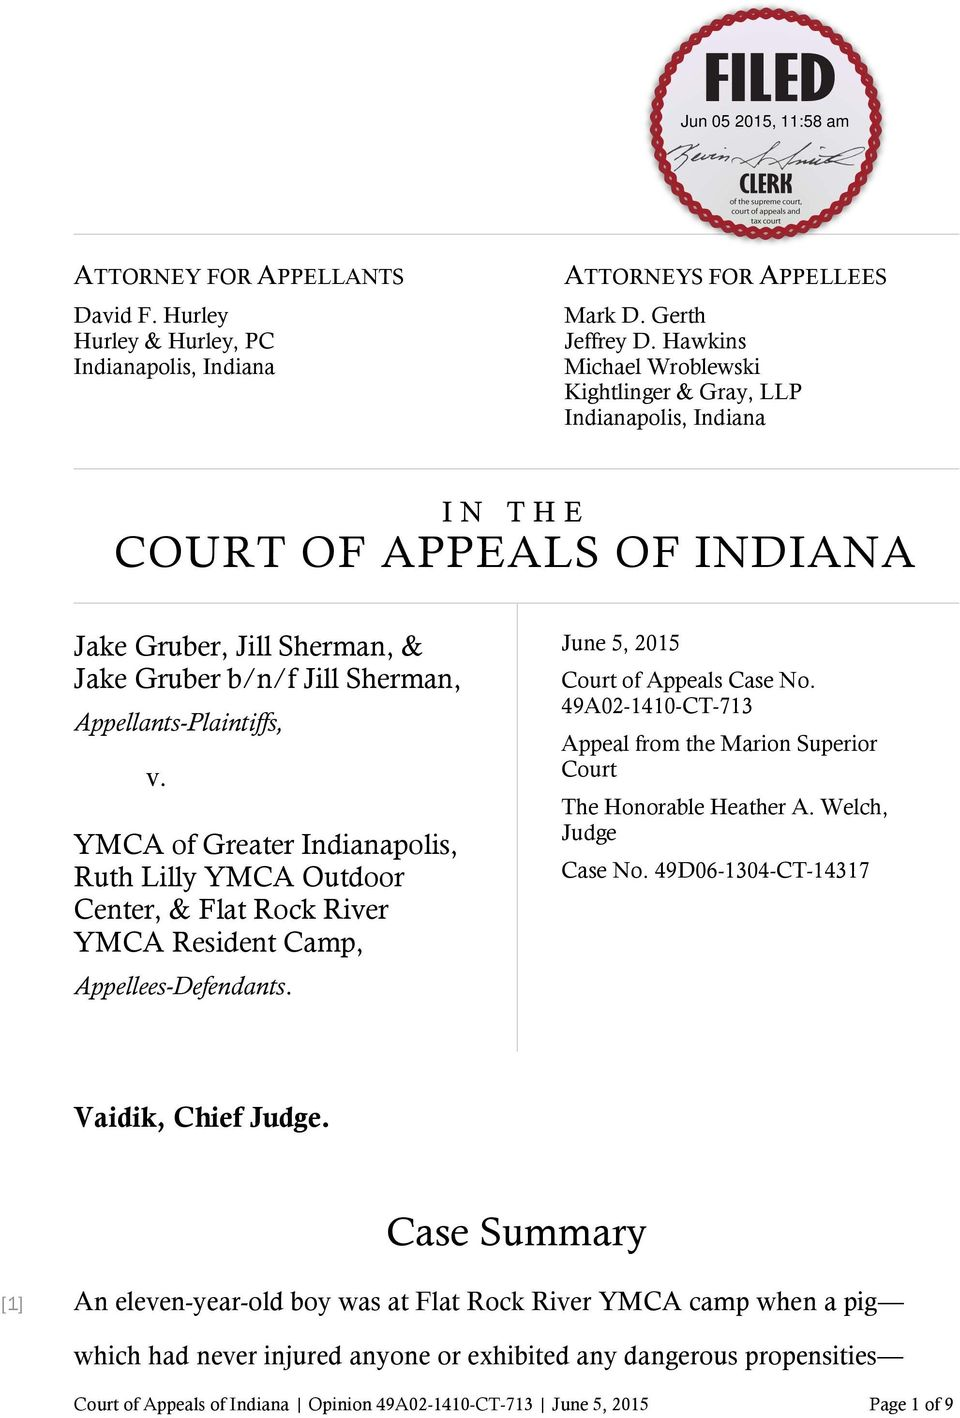 YMCA of Greater Indianapolis, Ruth Lilly YMCA Outdoor Center, & Flat Rock River YMCA Resident Camp, Appellees-Defendants. June 5, 2015 Court of Appeals Case No.